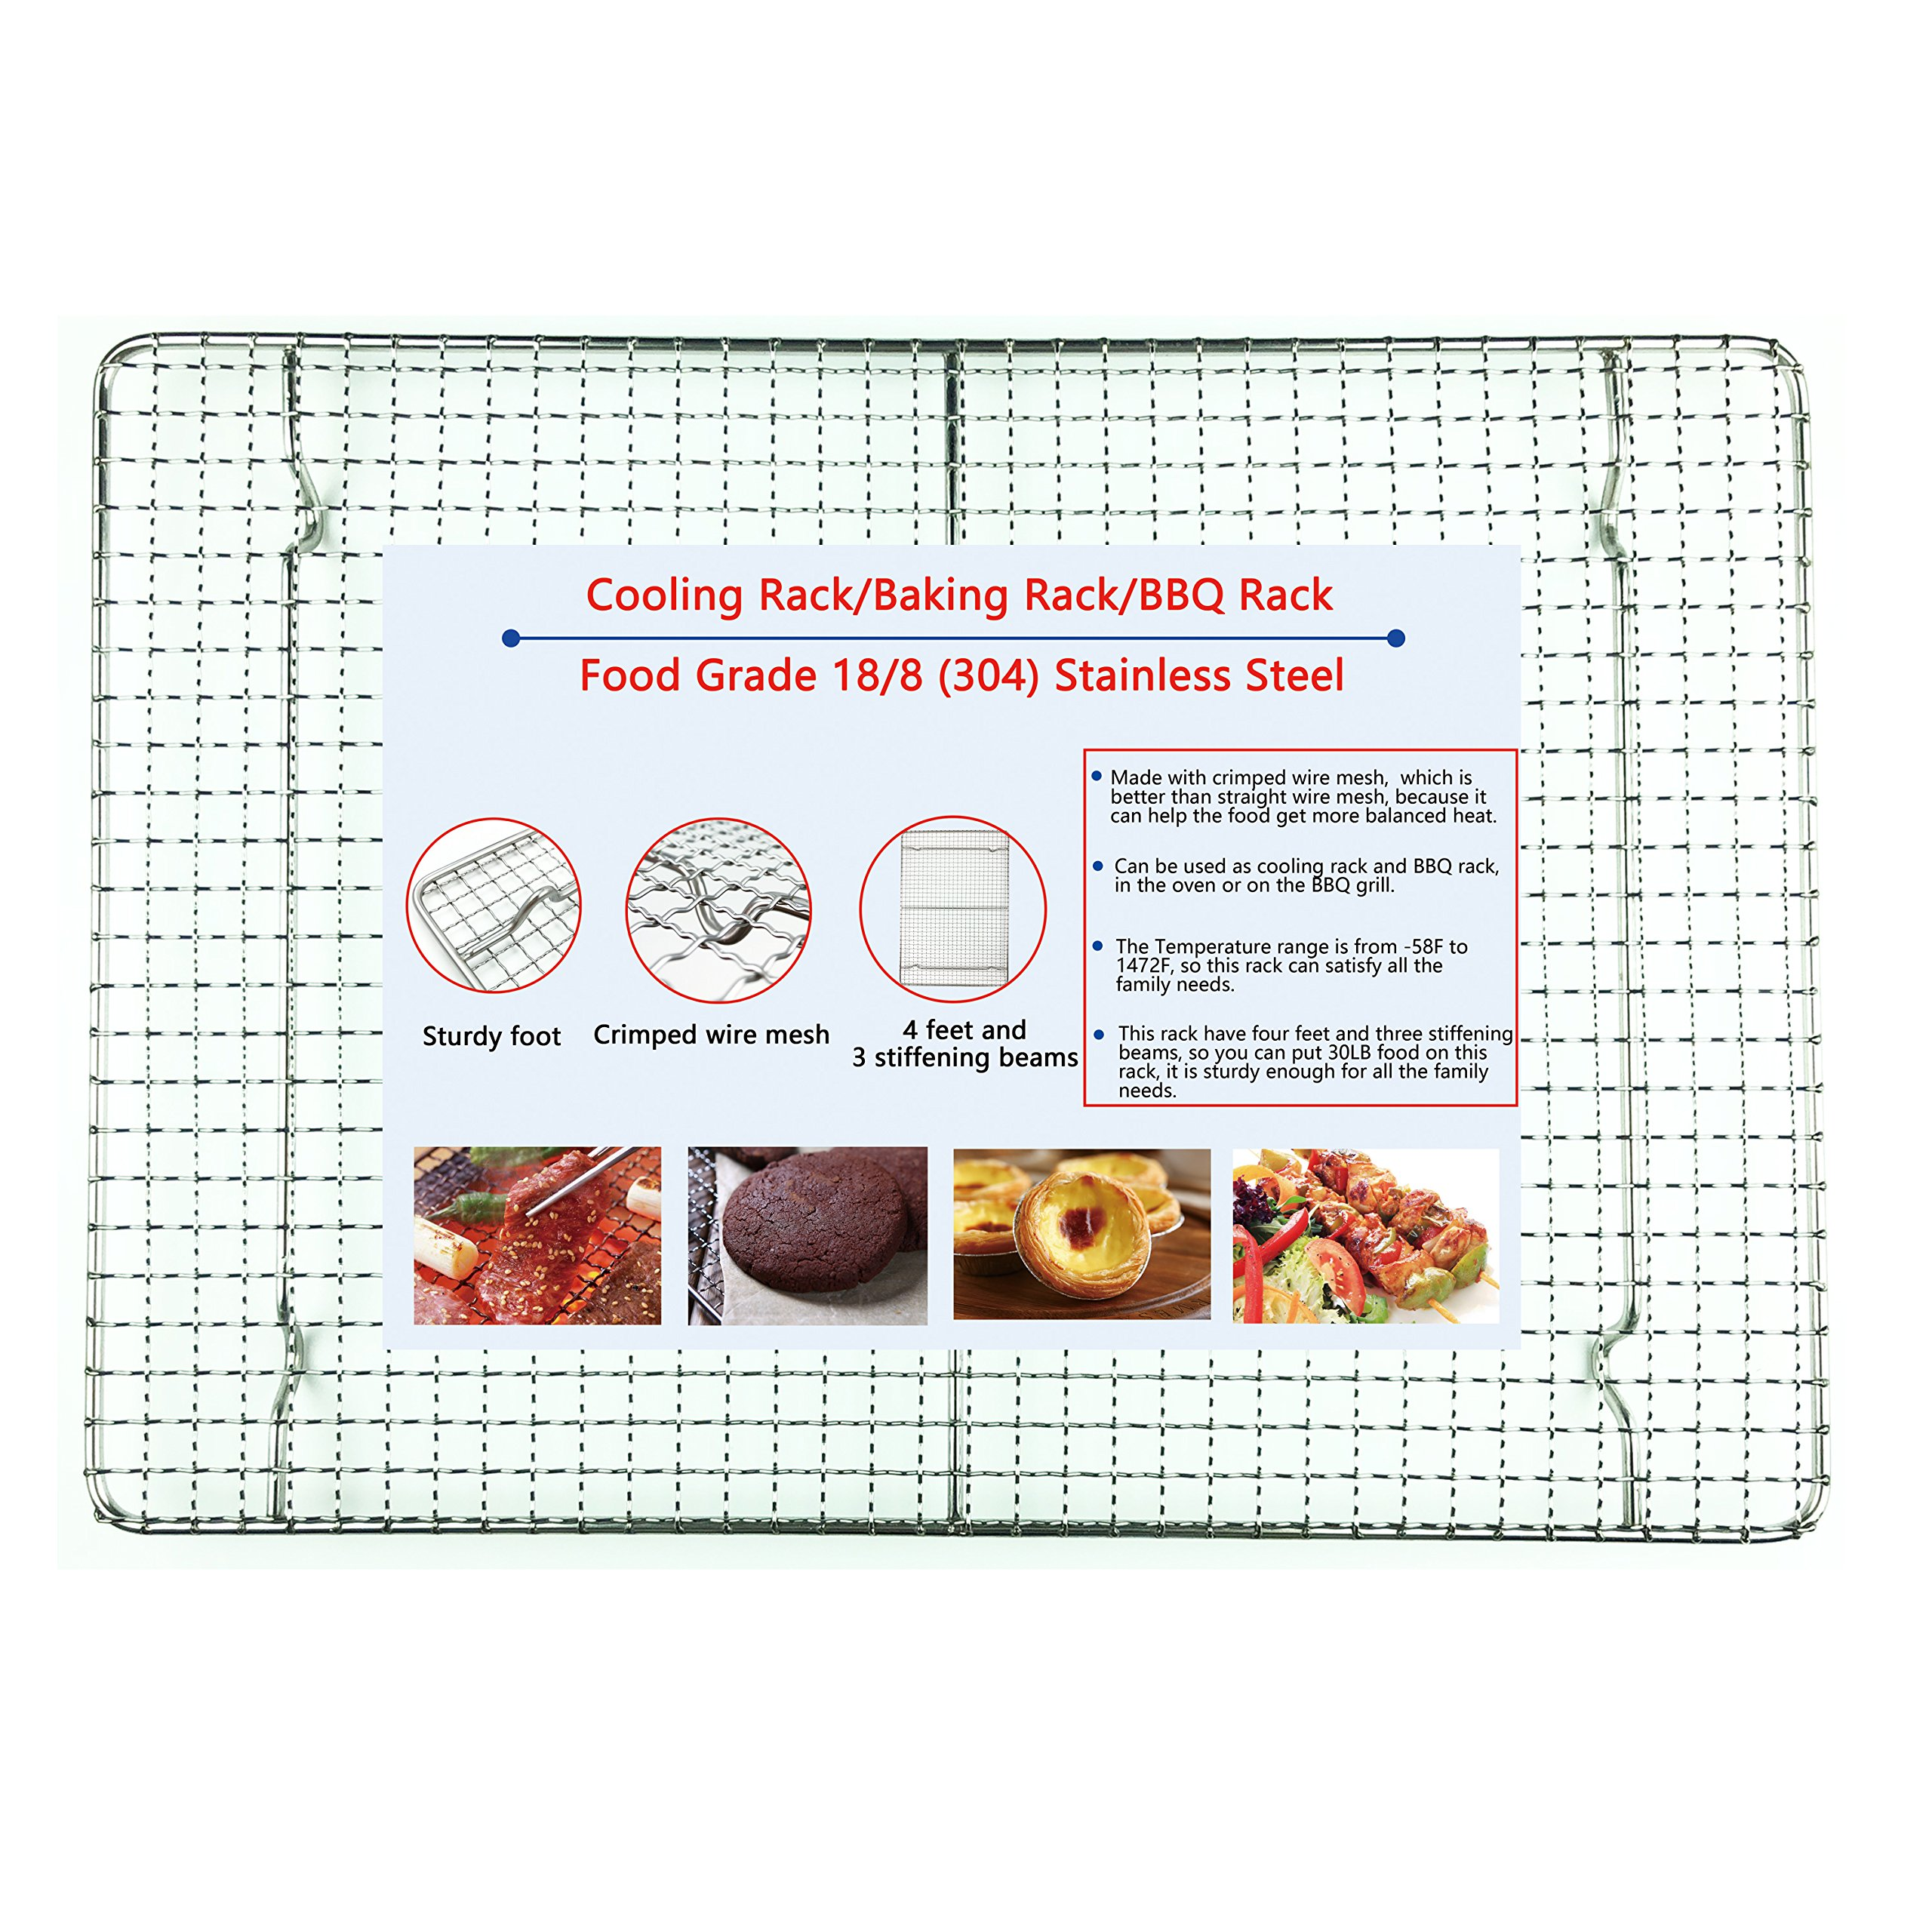 iAesthete Cooling Rack - 12x17 Inches - Food Grade 18/8 (304) Stainless Steel Crimped Wire, Open Fire and Oven Safe, Multiple Functions, BBQ Rack, Baking Rack, 4 Feet With 3 Stiffening Beams